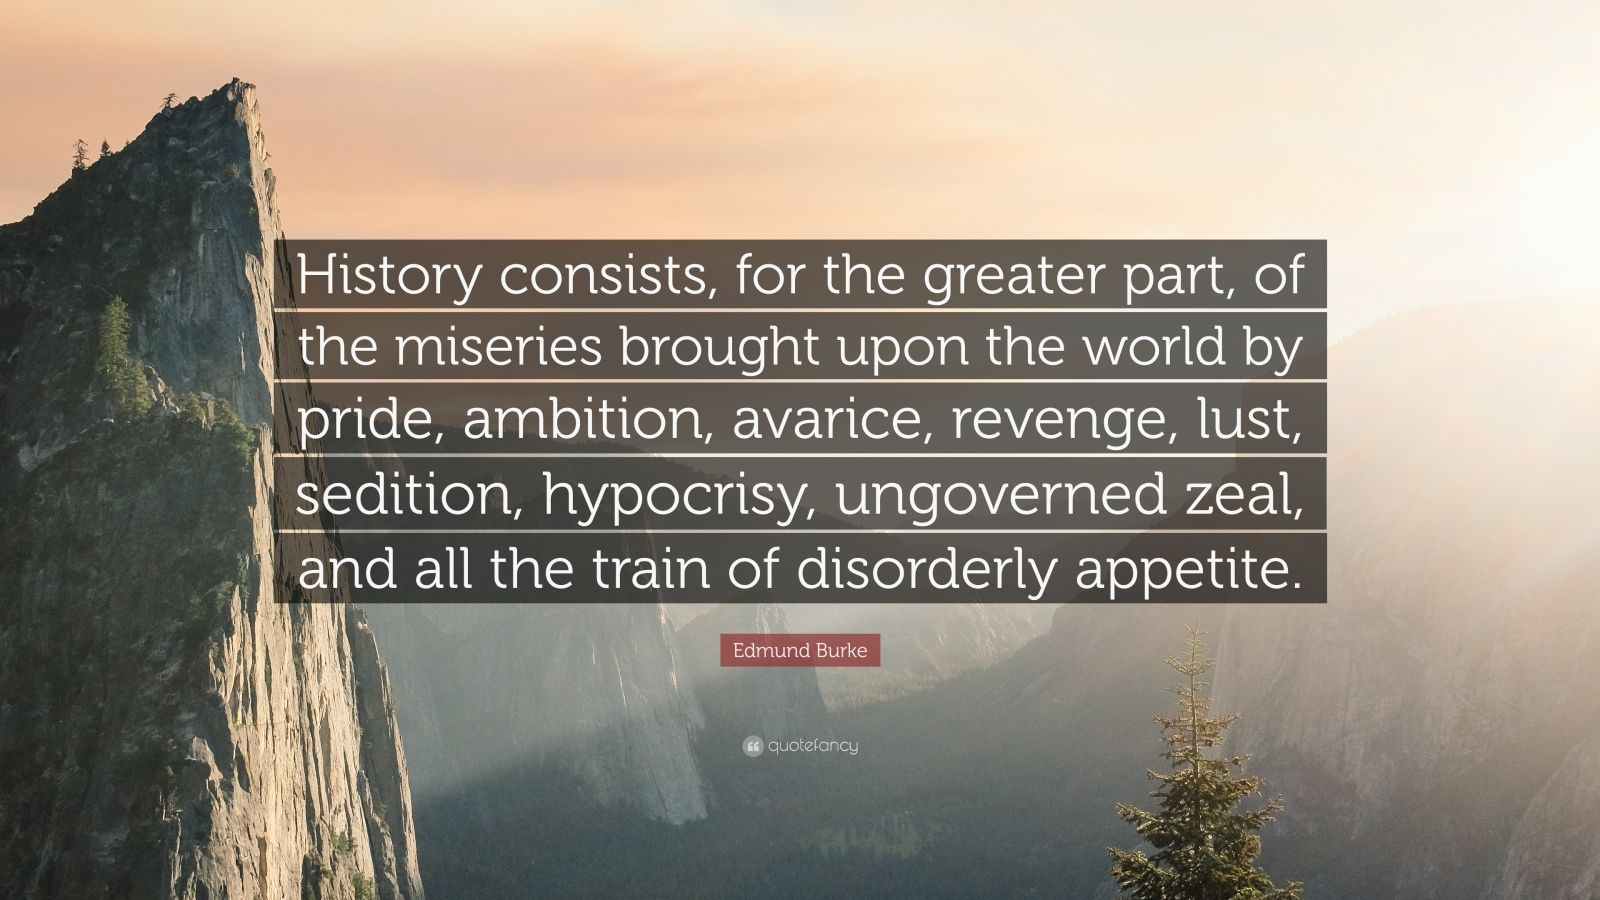 """Edmund Burke Quote: """"History consists, for the greater part, of the miseries brought upon the world by pride, ambition, avarice, revenge, lust, sedition, hypocrisy, ungoverned zeal, and all the train of disorderly appetite."""""""